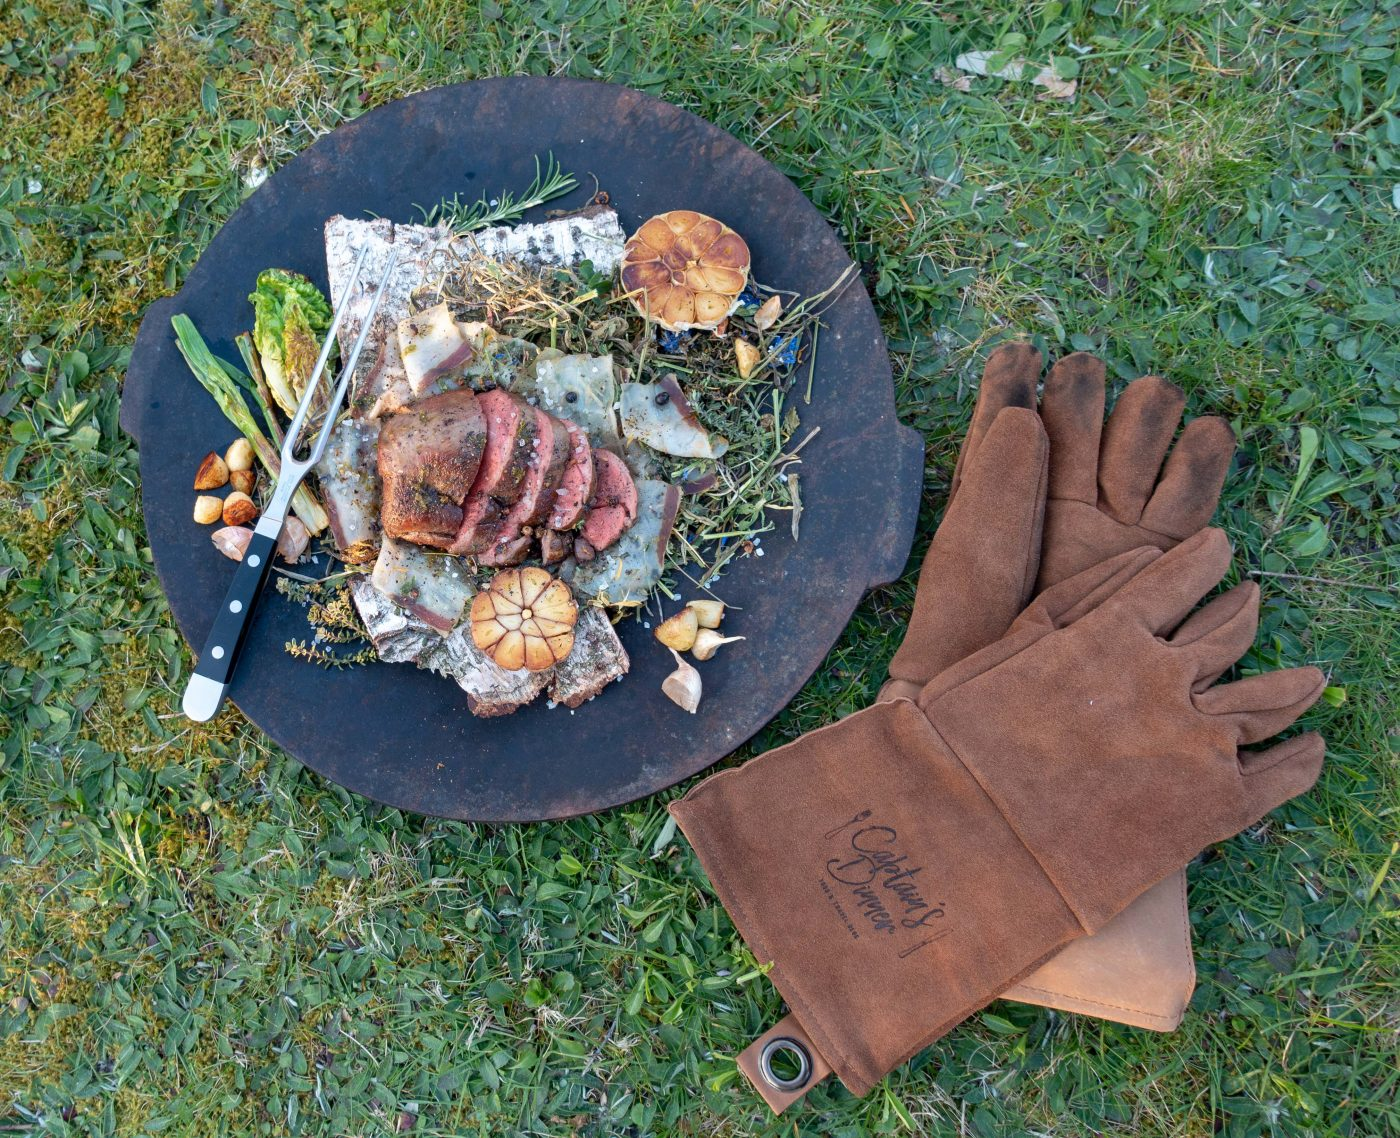 BBQ in May: Roast venison on hay